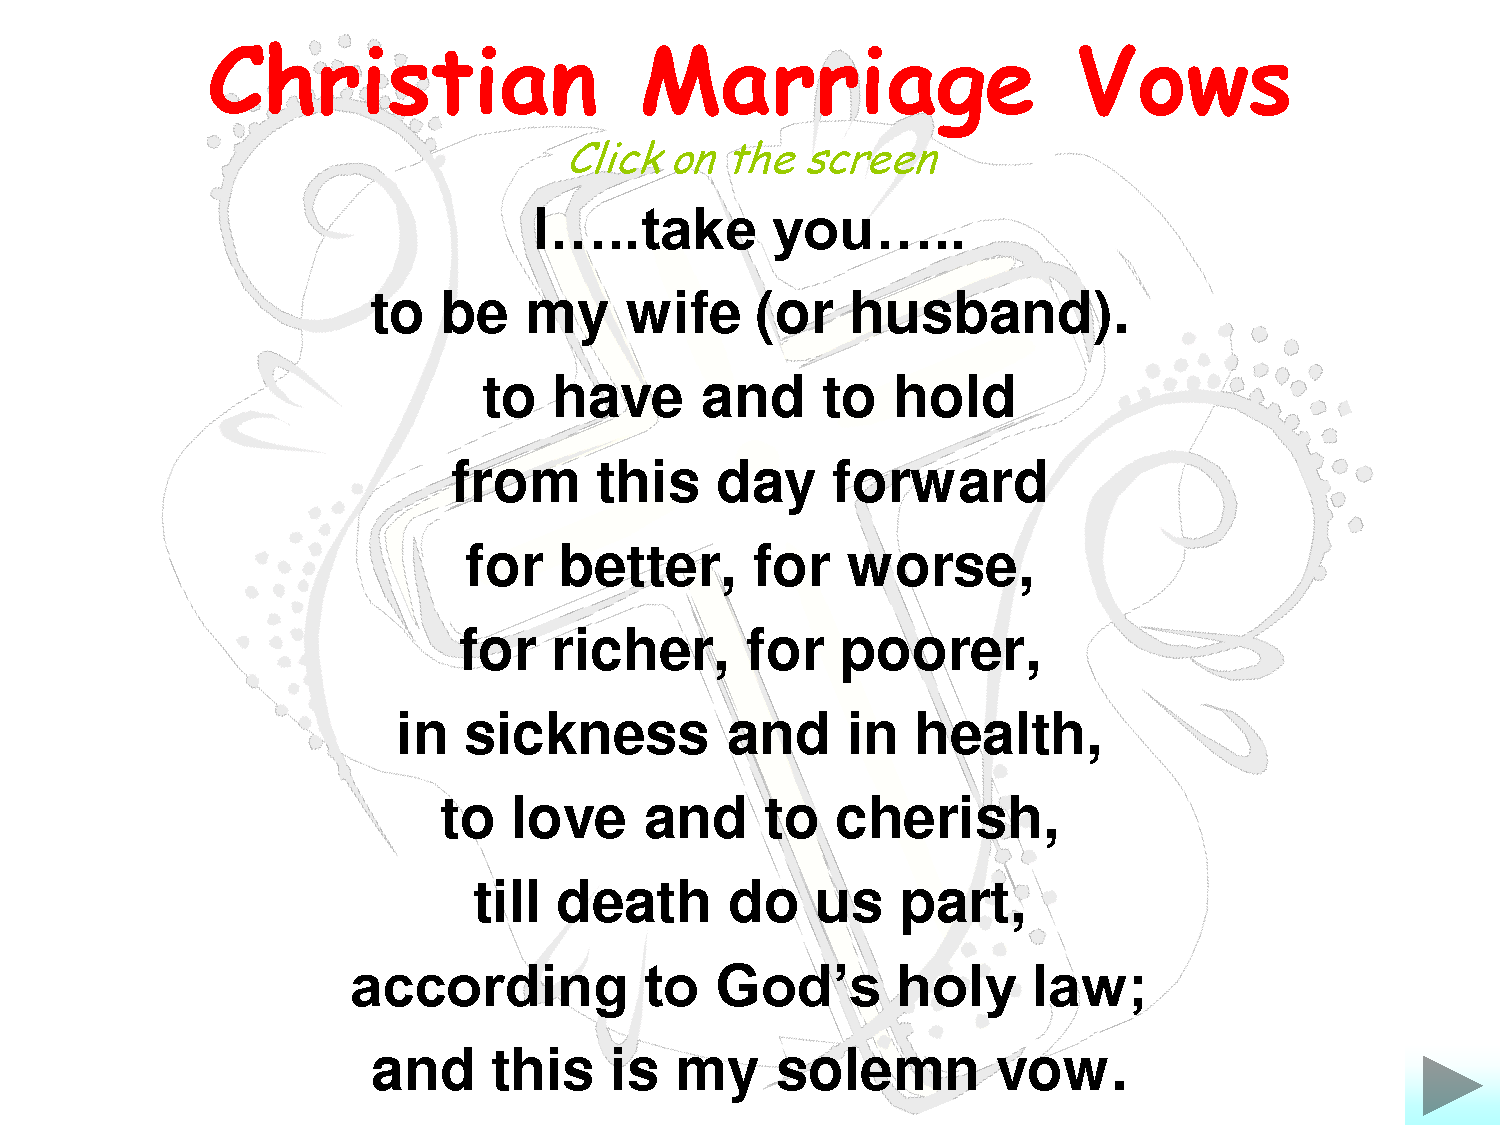 Google Image Result For Http Img Docstoccdn Com Thumb Orig 22275051 Png Traditional Wedding Vows Best Wedding Vows Christian Wedding Vows